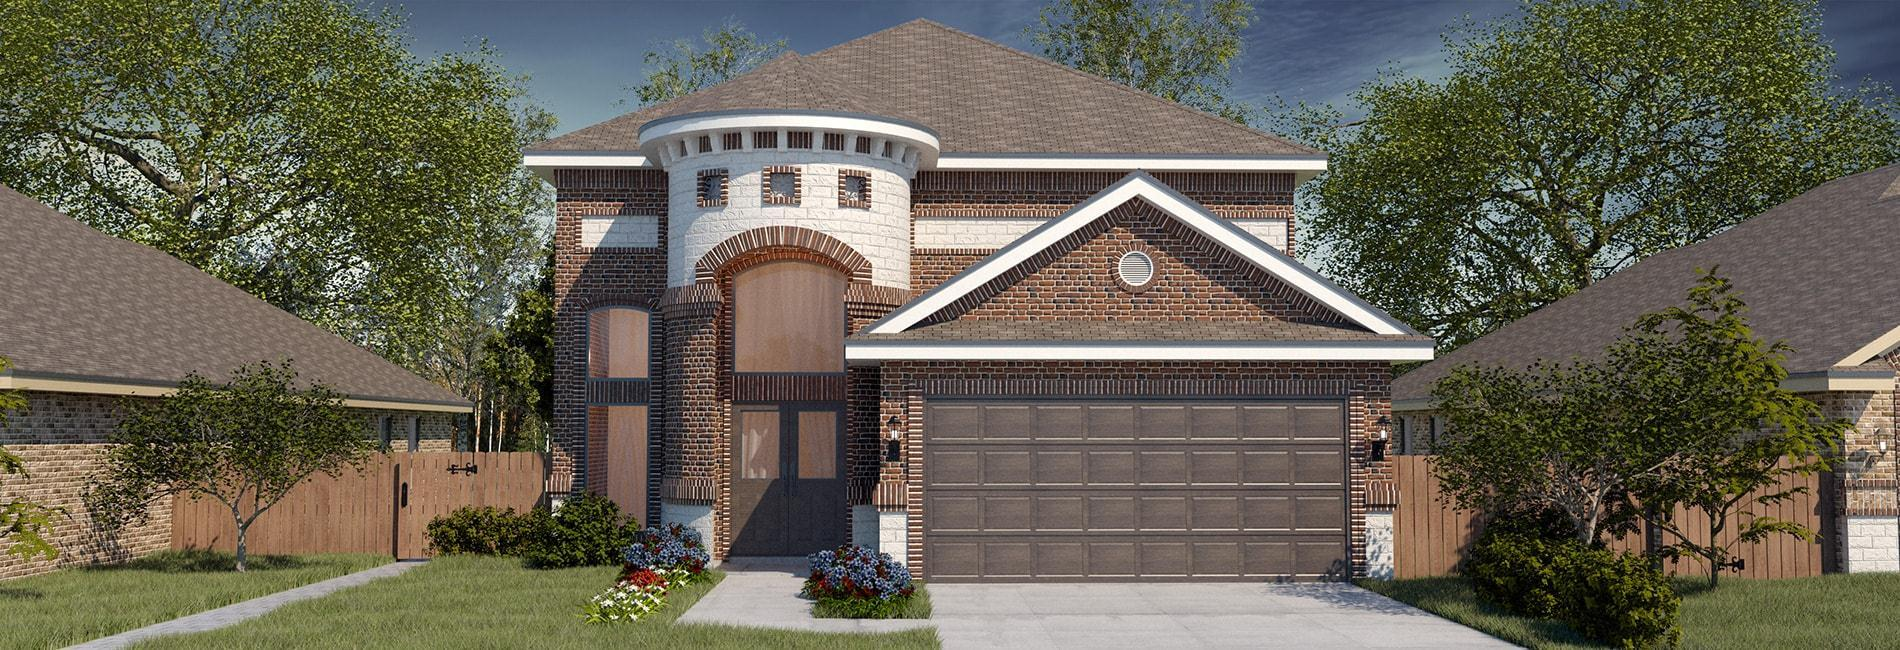 Exterior featured in the San Cristobal II By WestWind Homes in Rio Grande Valley, TX